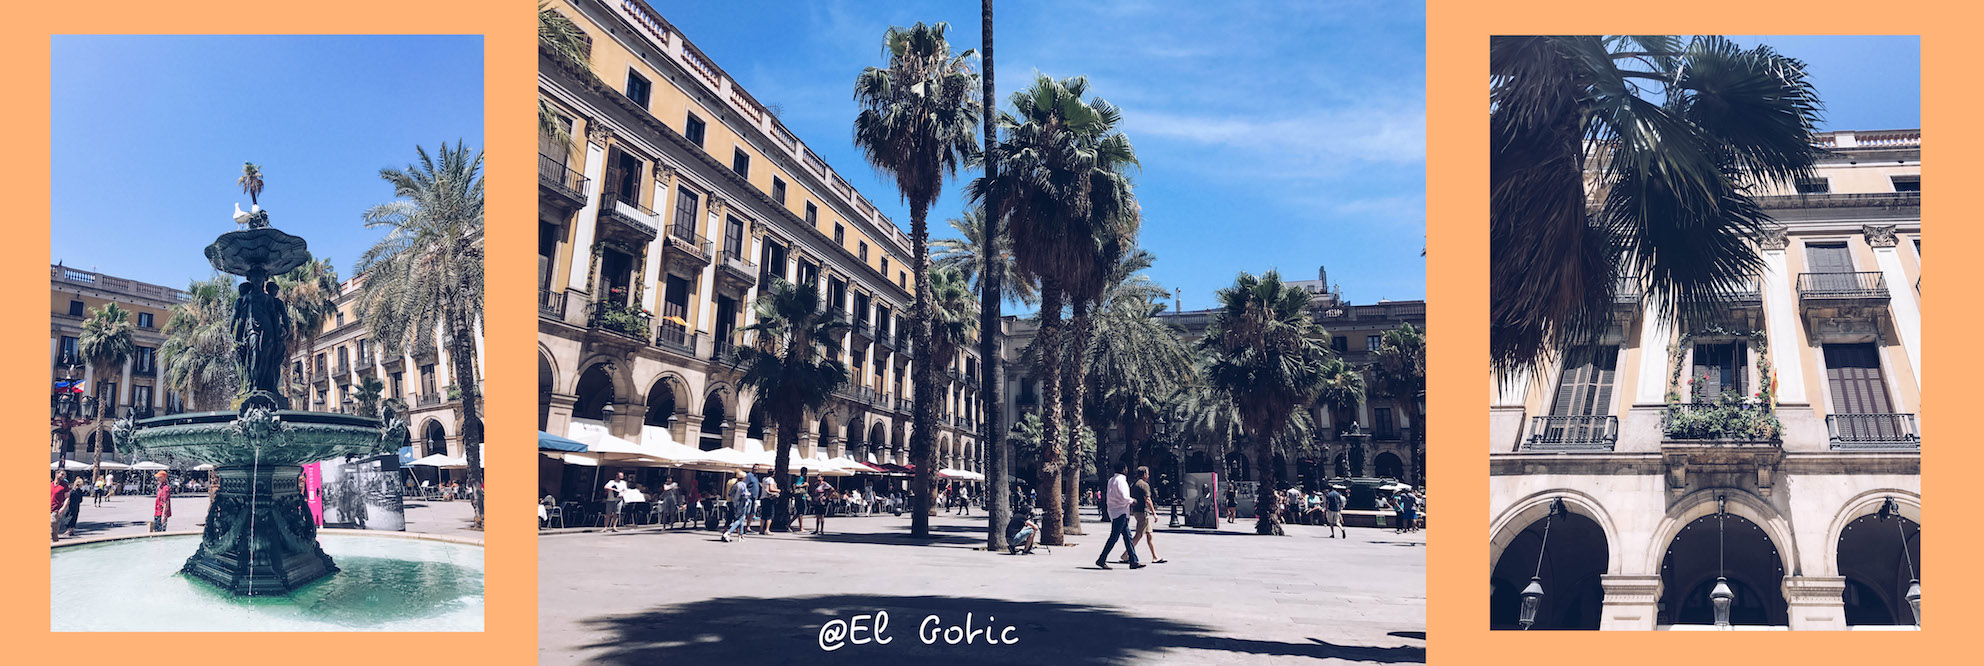 floortjeloves, barcelona, loavies, louis vuitton, zara, nike, what to do in barcelona, citytrip, city trip, a weekend in barcelona, weekend getaway